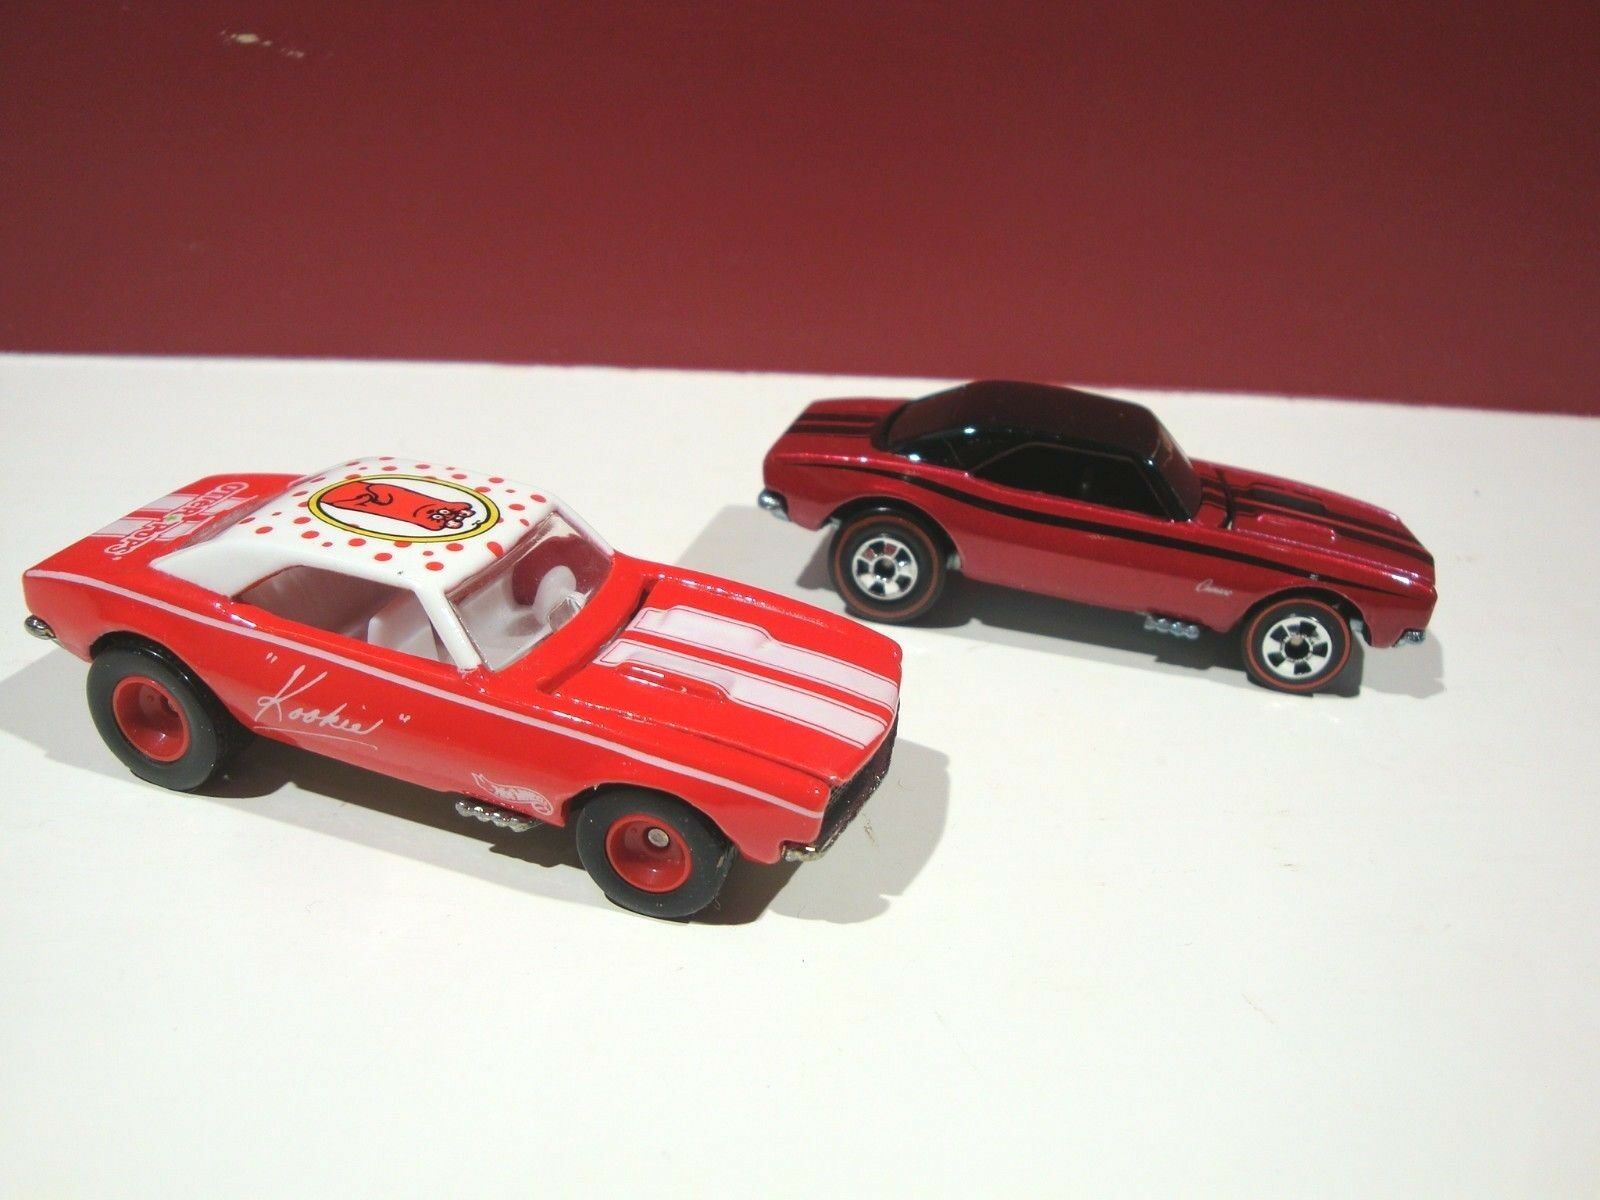 Hotwheels PAIR of 67 camaro OTTER POPS SINCE 68 You get BOTH redline real riders